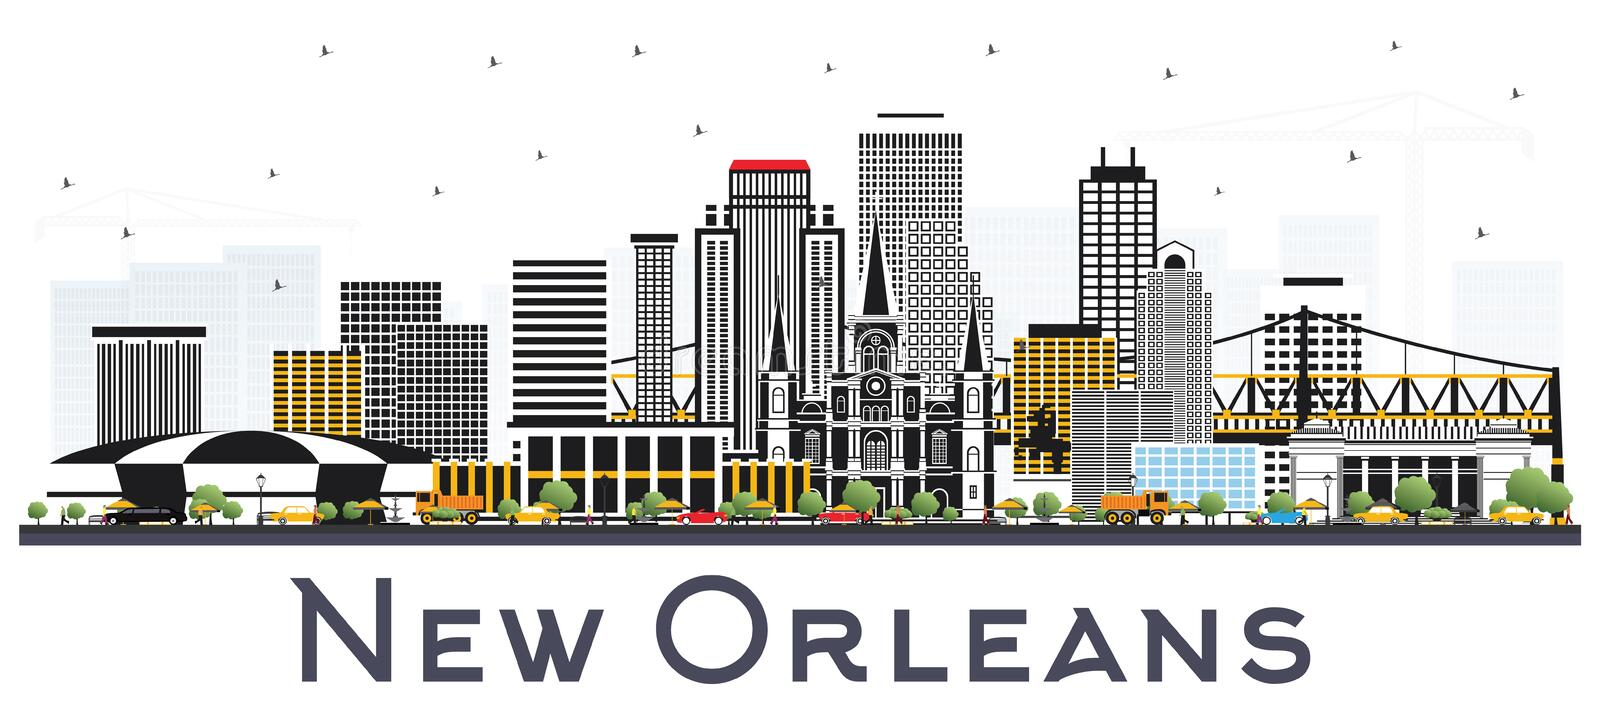 Horizonte de la ciudad de New Orleans Luisiana con Gray Buildings Isolated stock de ilustración